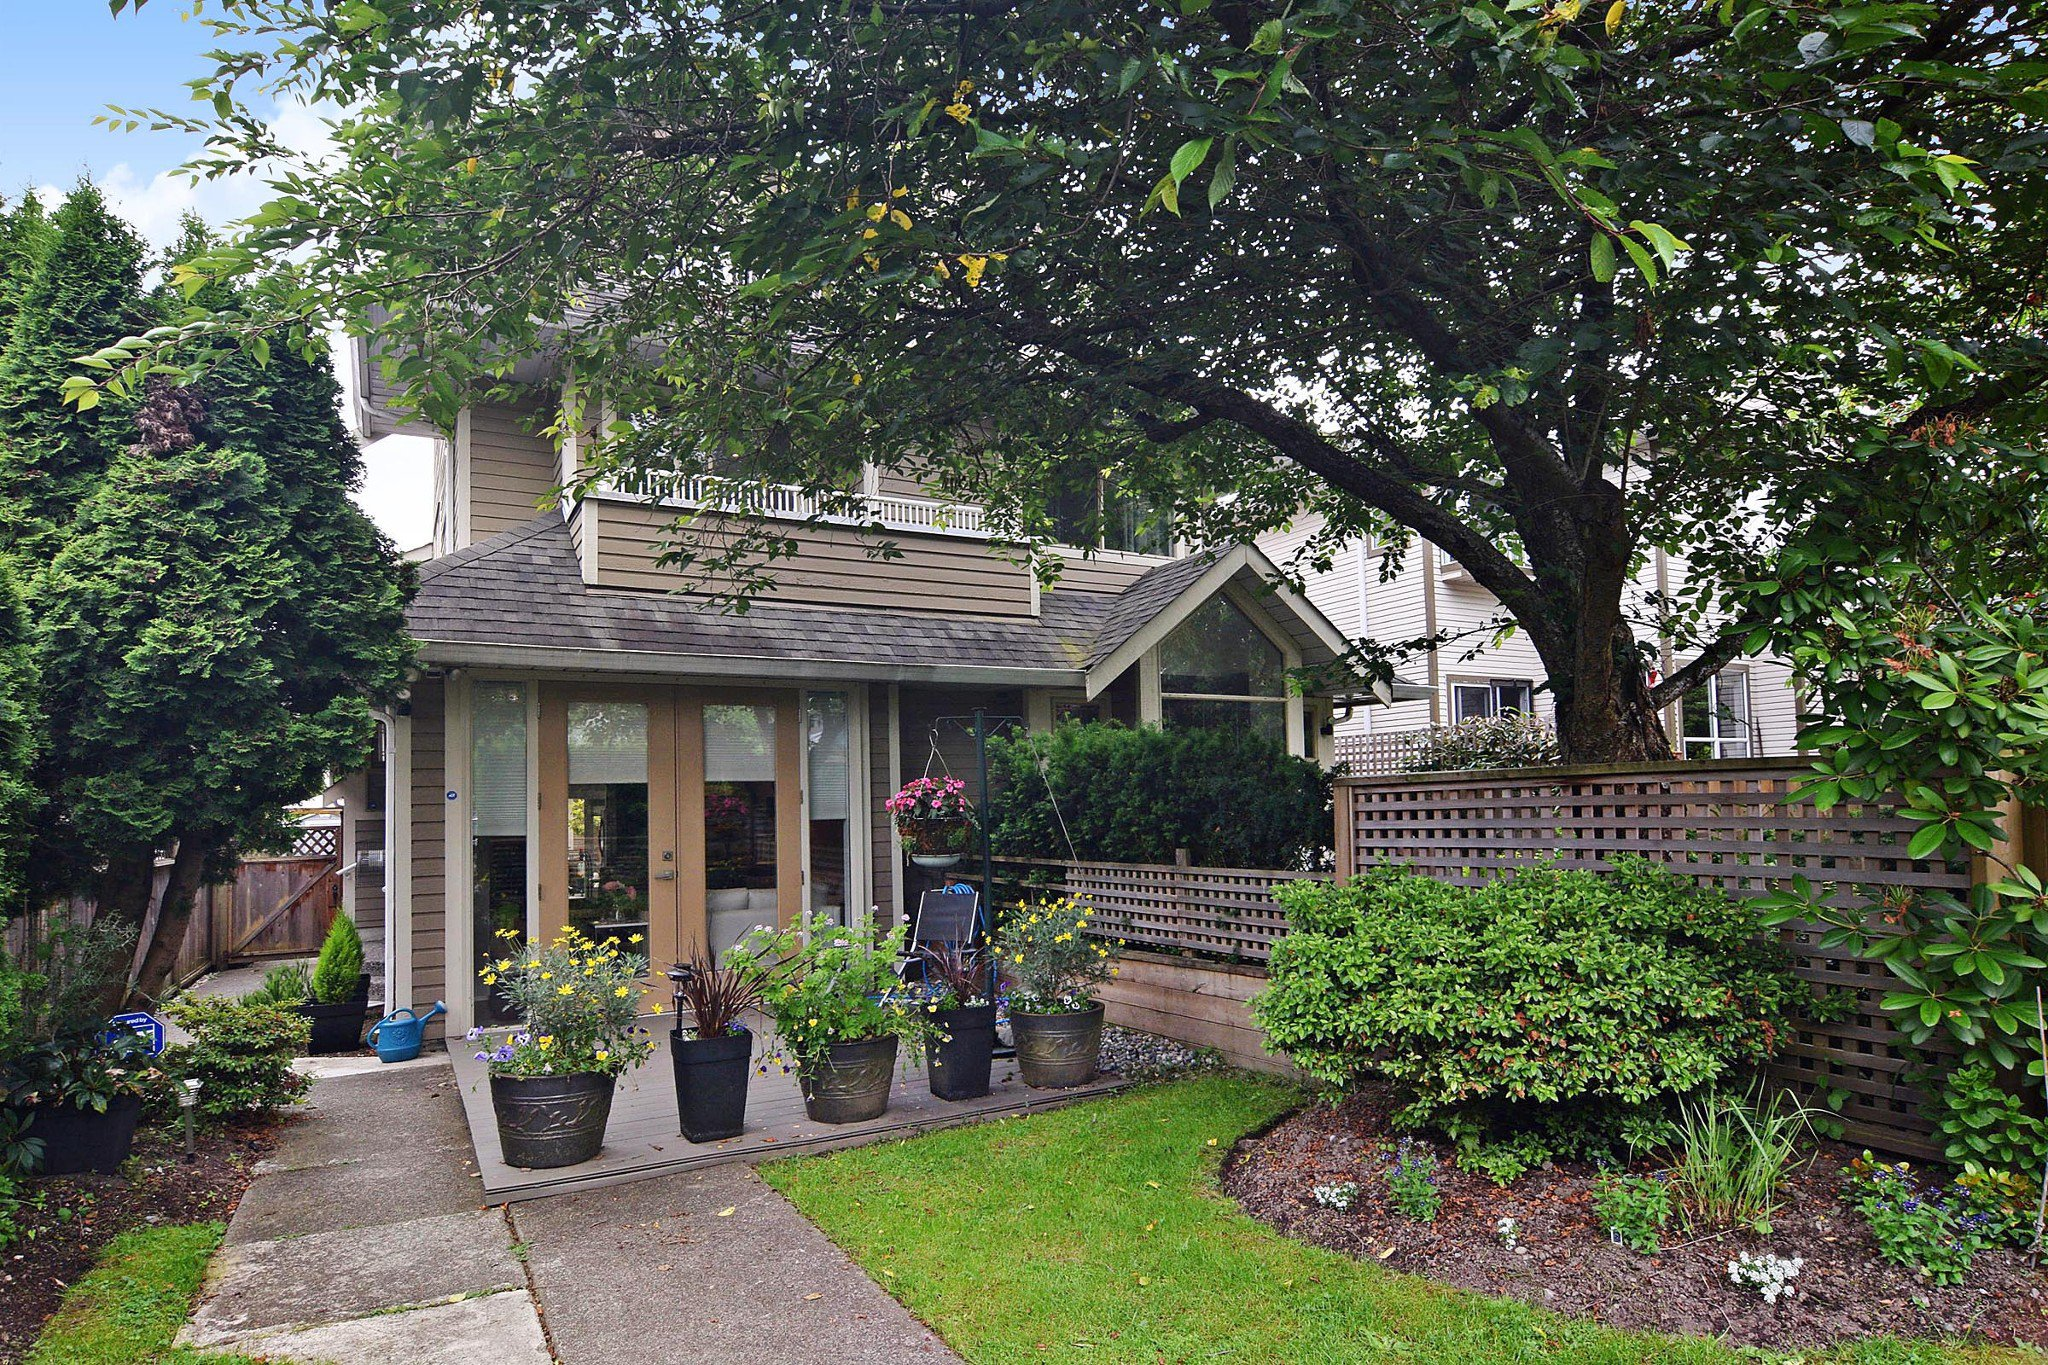 Main Photo: 3236 W 7TH Avenue in Vancouver: Kitsilano 1/2 Duplex for sale (Vancouver West)  : MLS®# R2467795